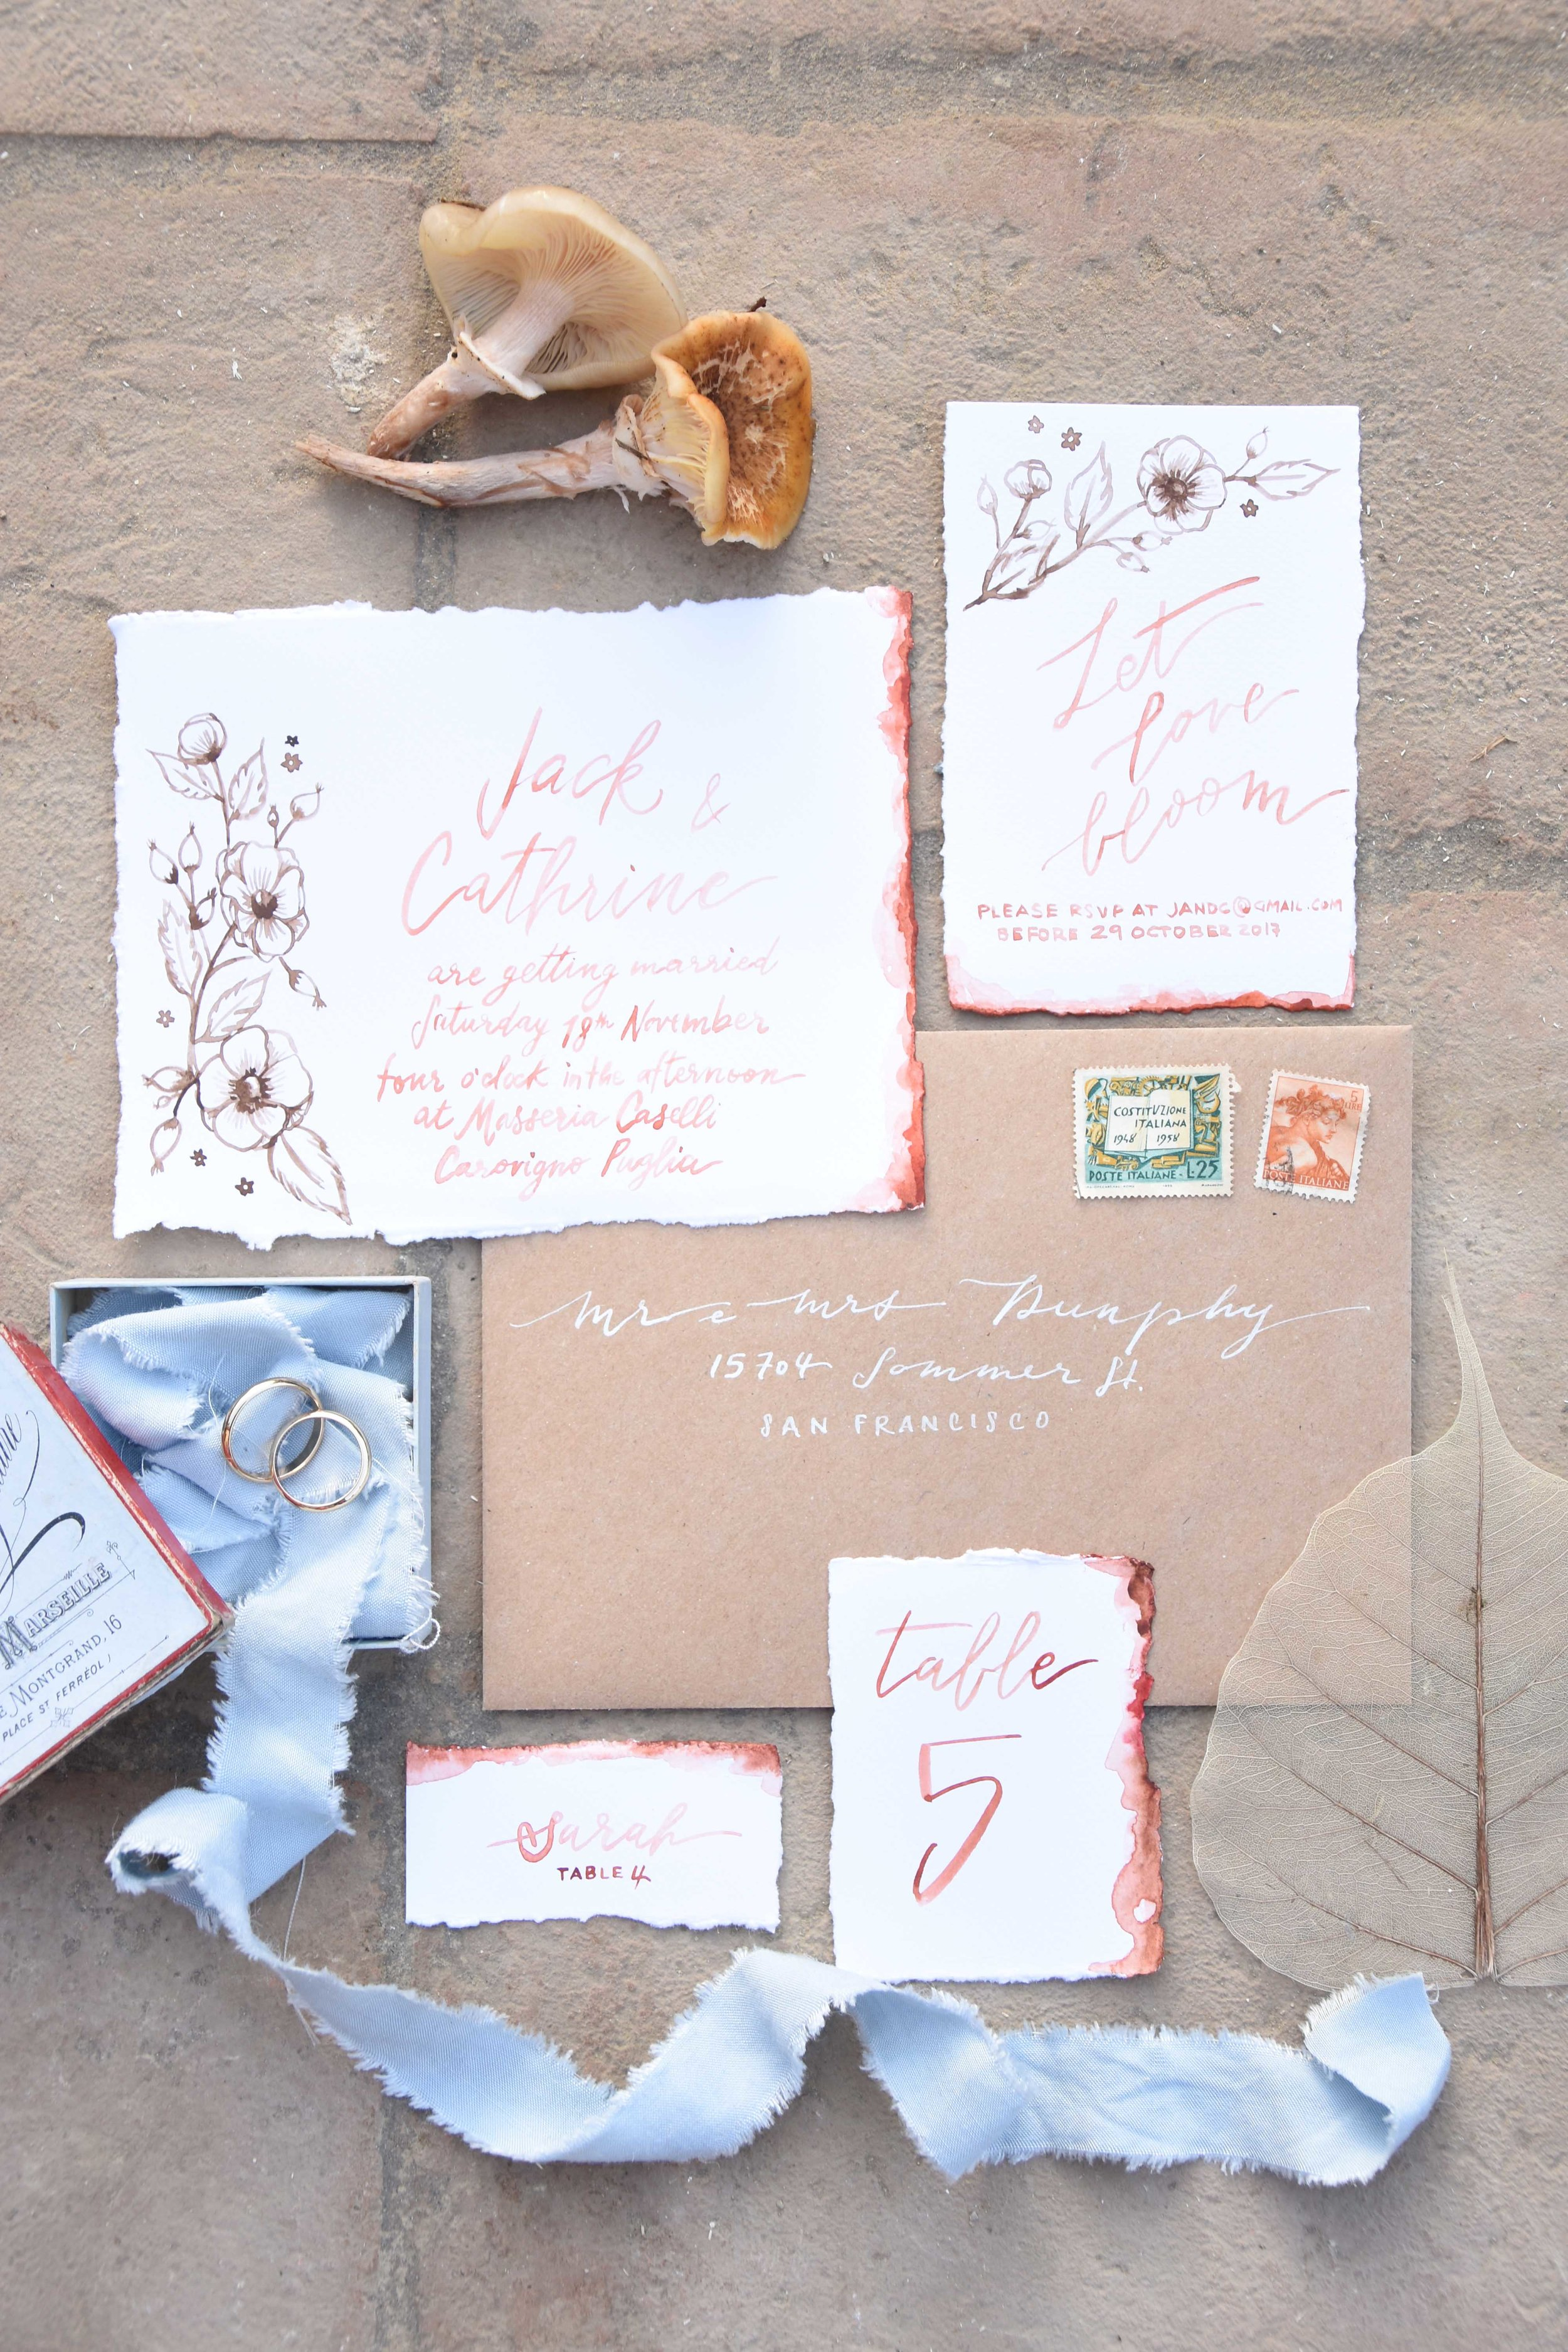 invitation hand painted autumn the marshy's vintage garden wedding planner tuscany toscana calligraphy partecipazioni montaione firenze stationery.jpg